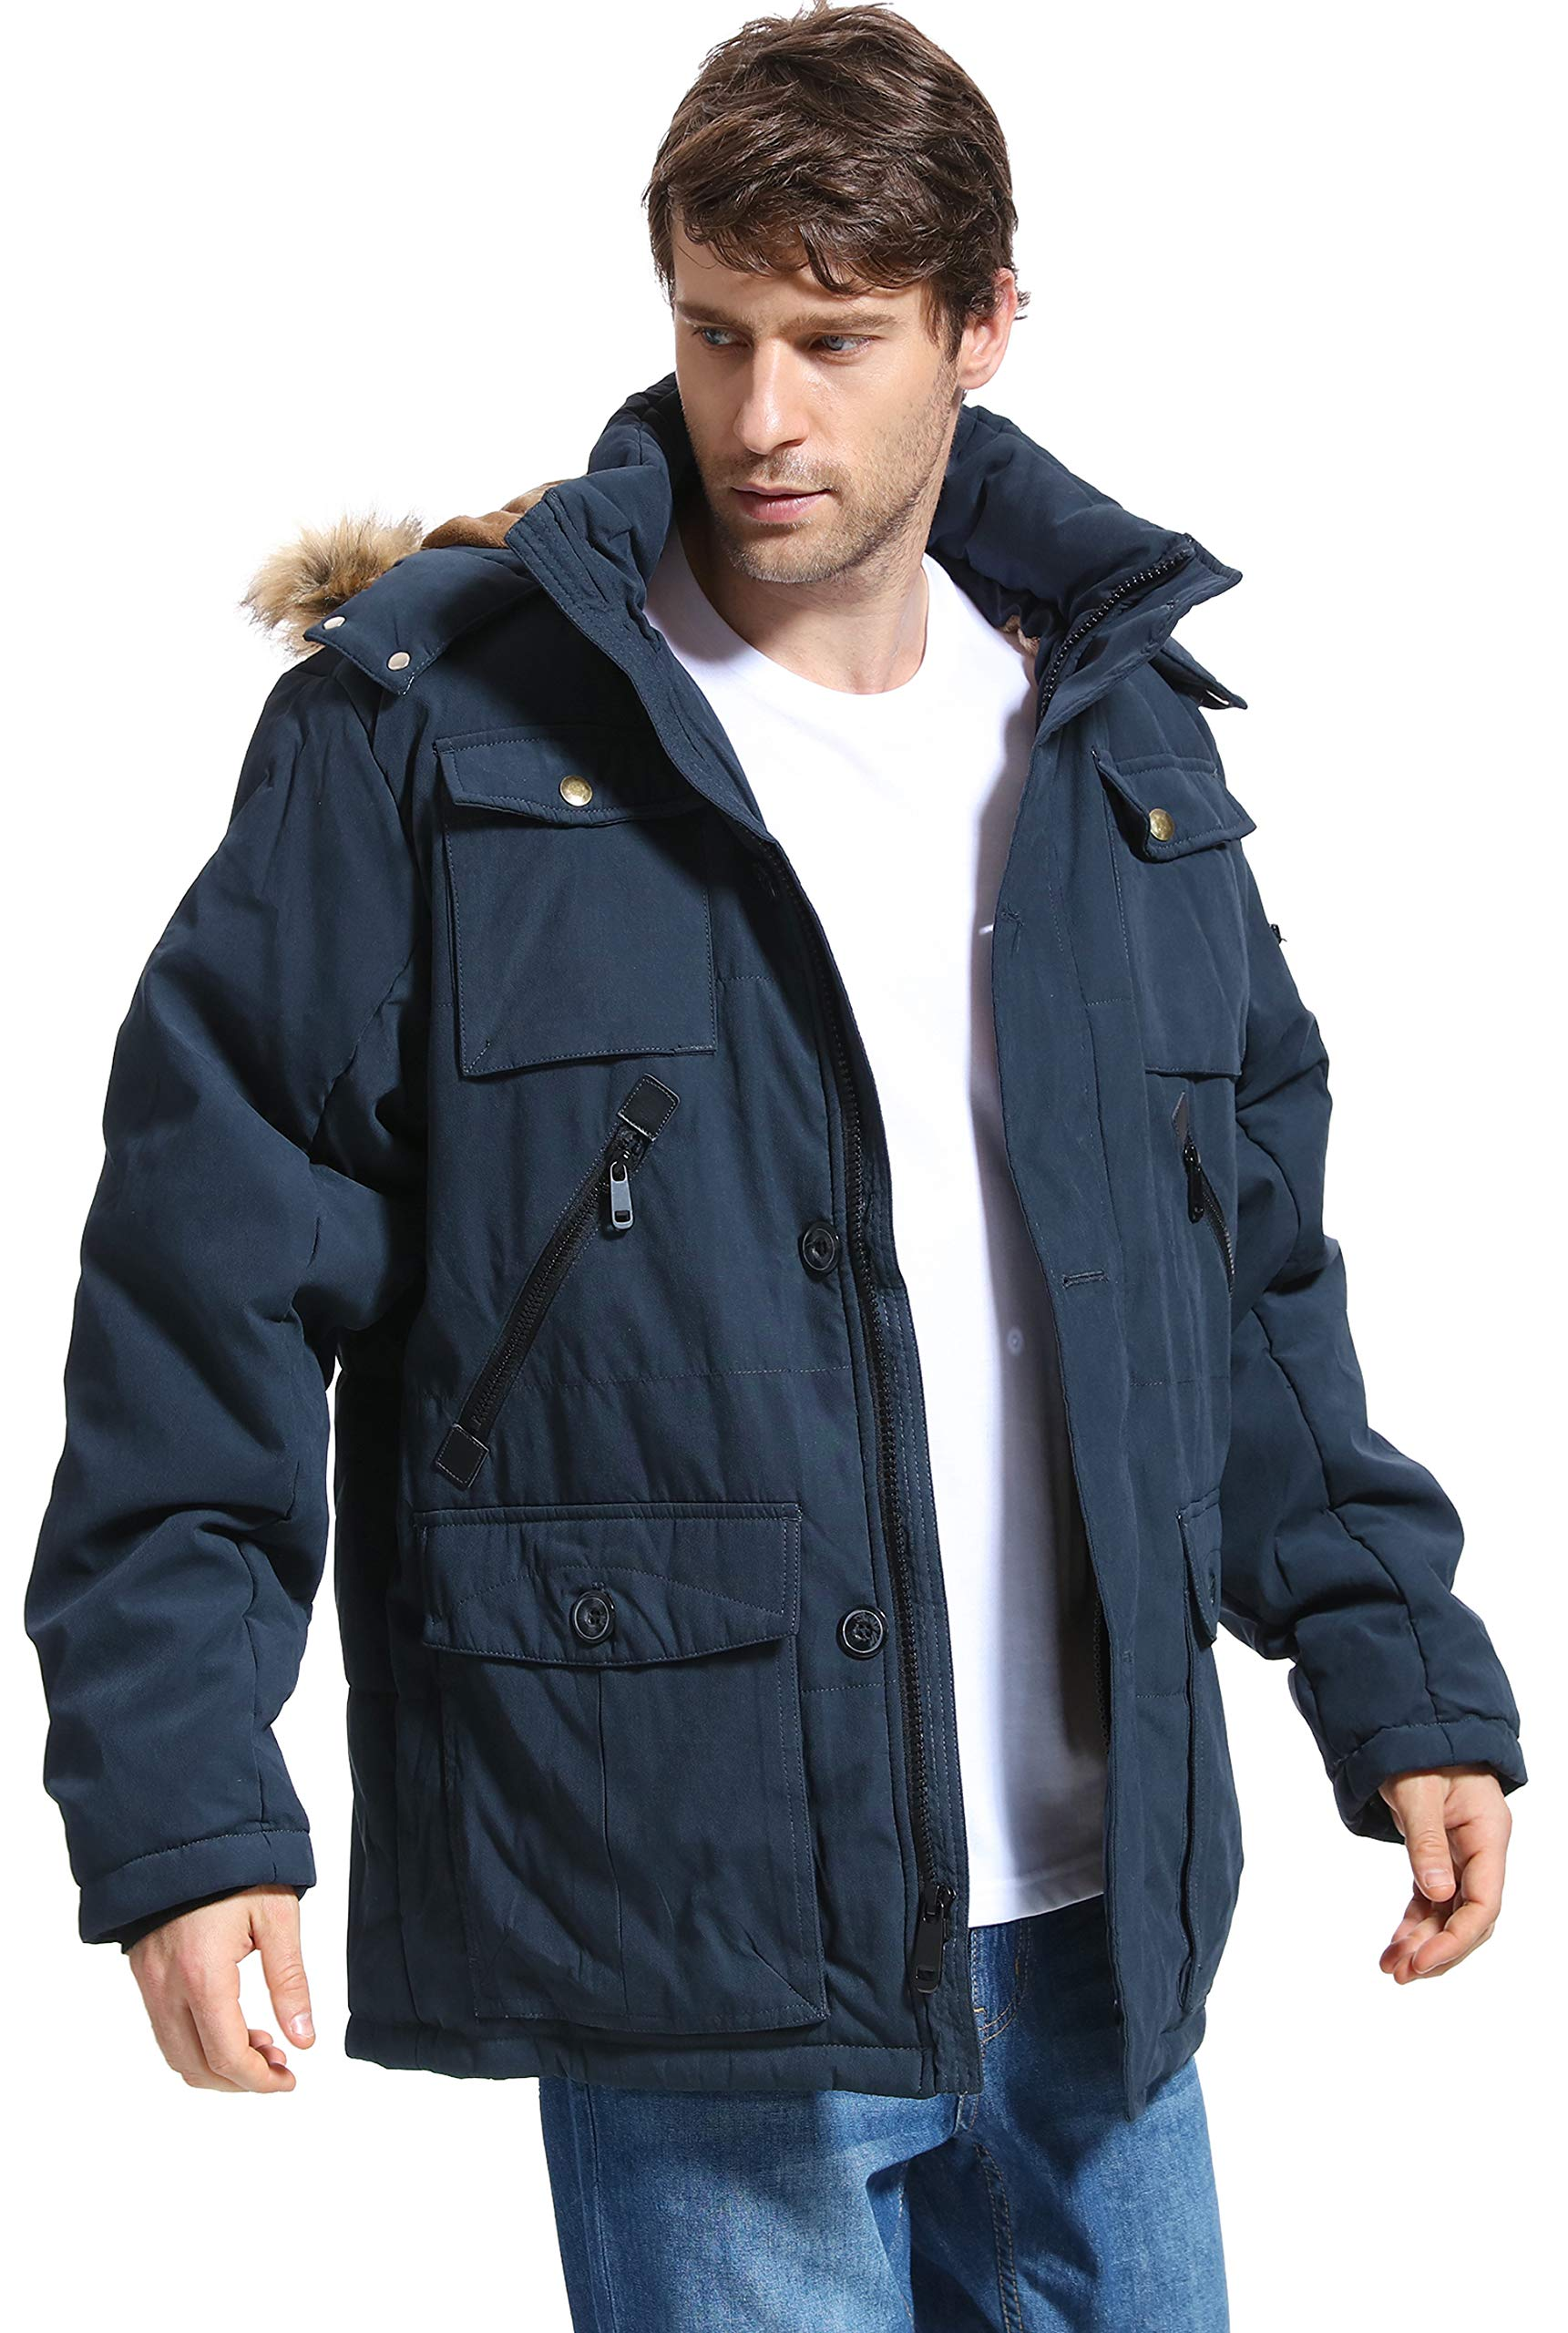 Piero Lusso Mens Parka Water and Wind Proof Coat Zippered and Snapped Clouse Outerwear Jacket